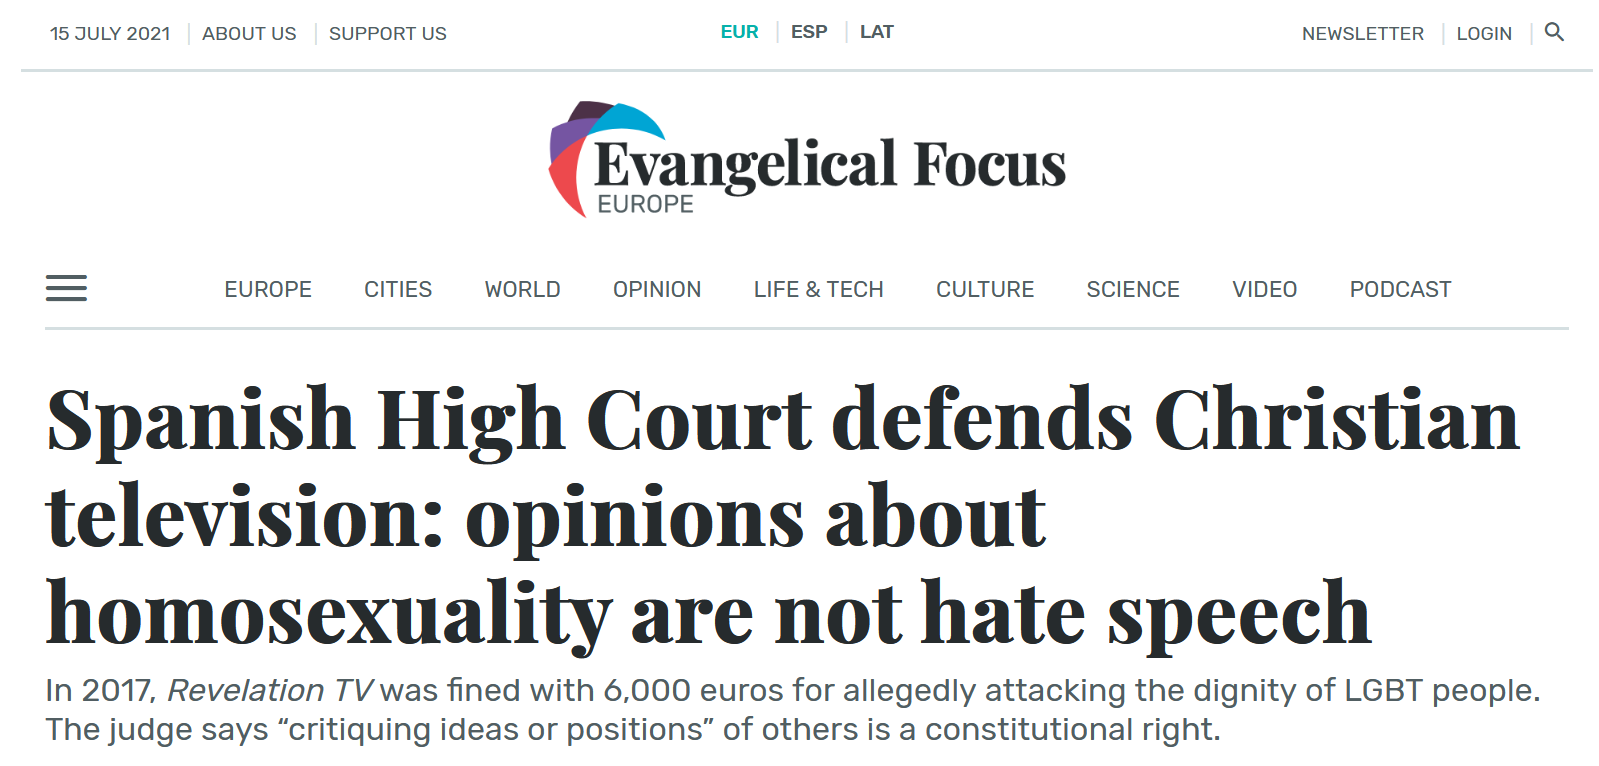 https://evangelicalfocus.com/europe/12044/spanish-high-court-defends-fined-christian-television-comments-about-homosexuality-were-not-hate-speech-but-freedom-of-expression